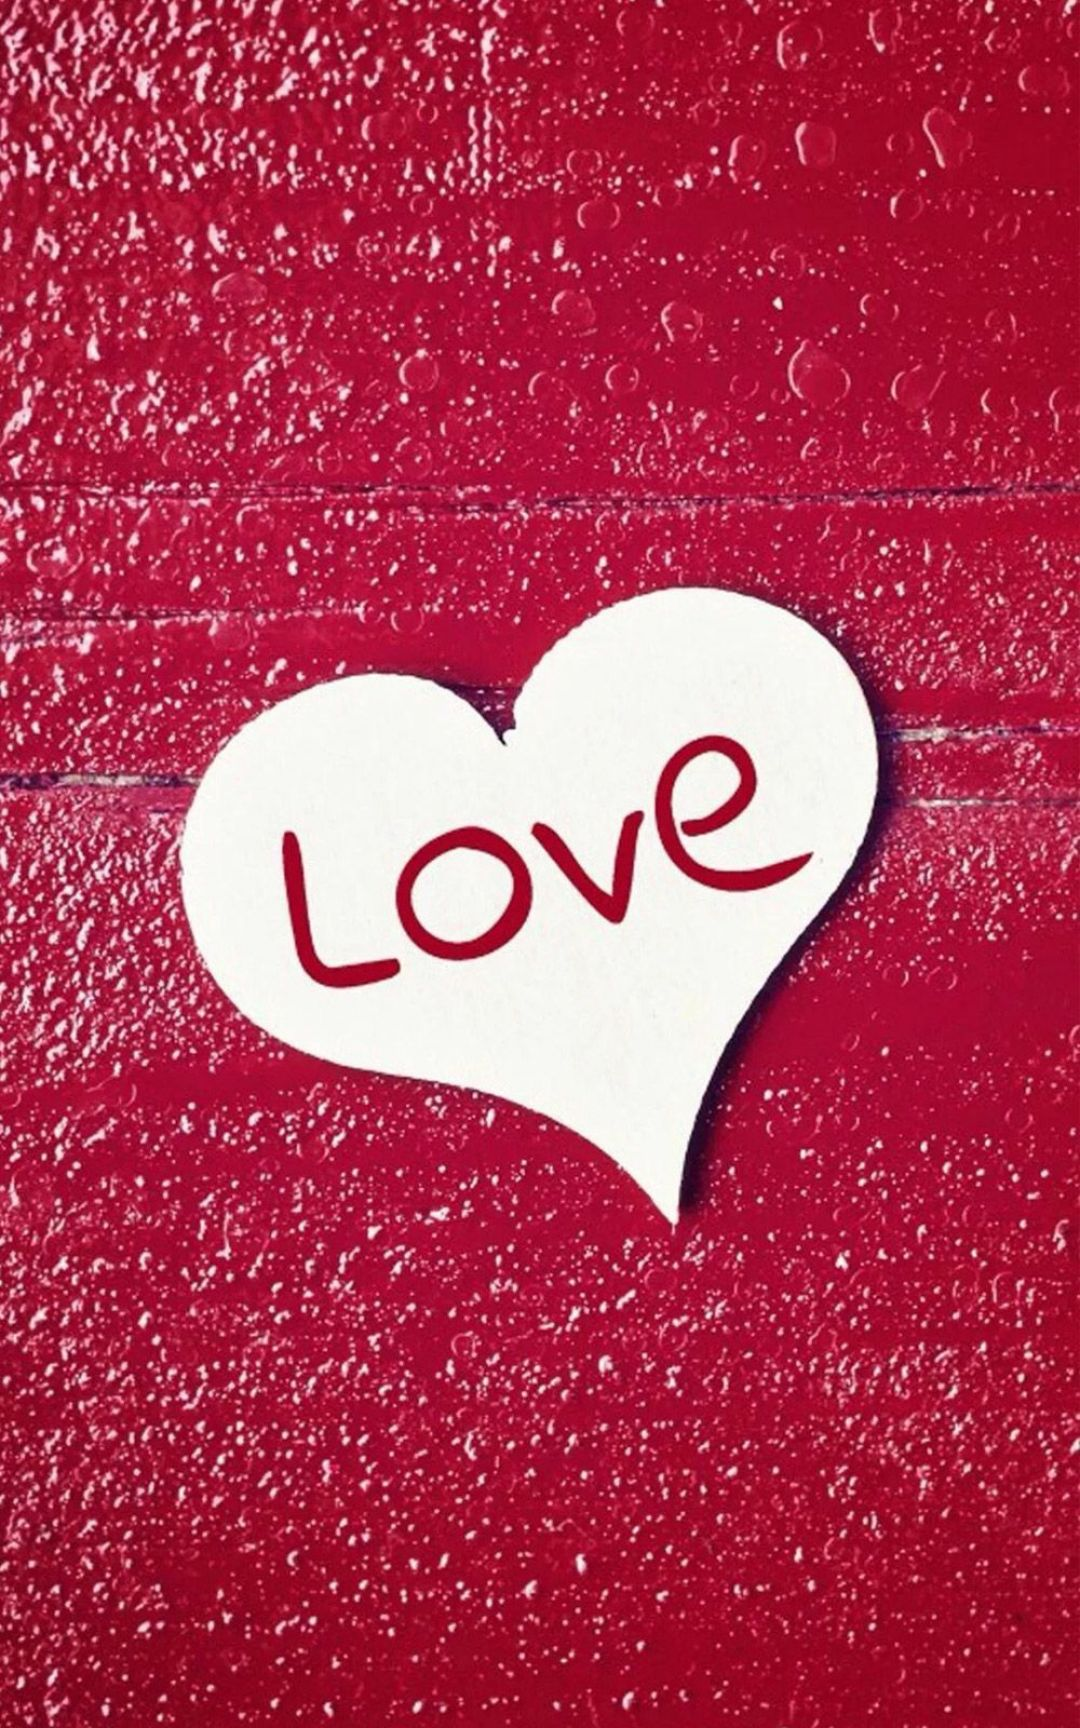 55 Love Iphone Android Iphone Desktop Hd Backgrounds